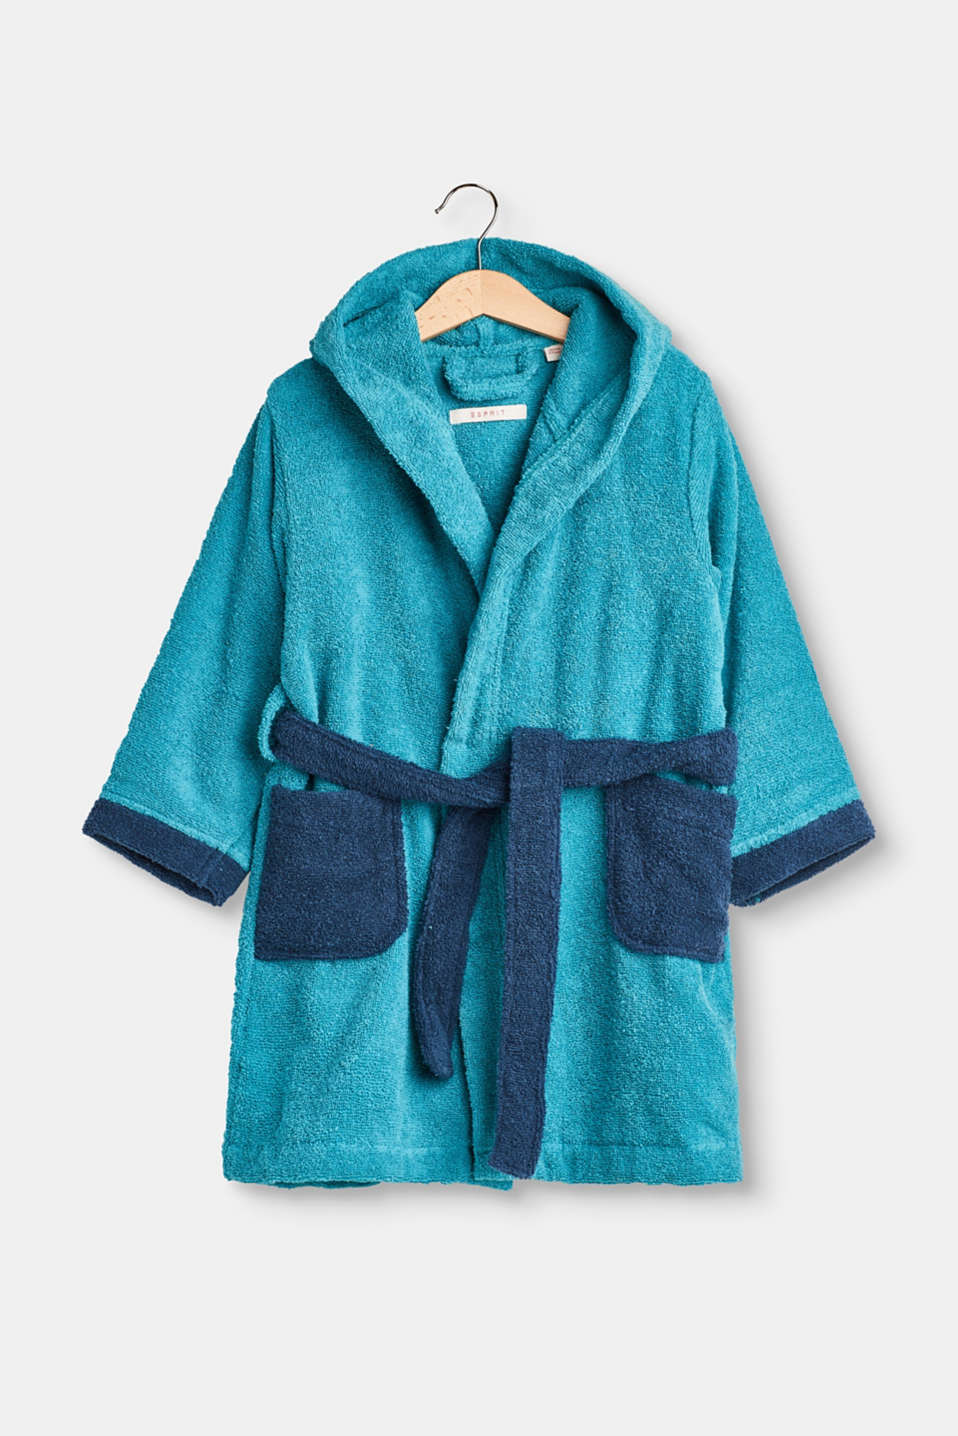 Esprit - Children's bathrobe in 100% cotton